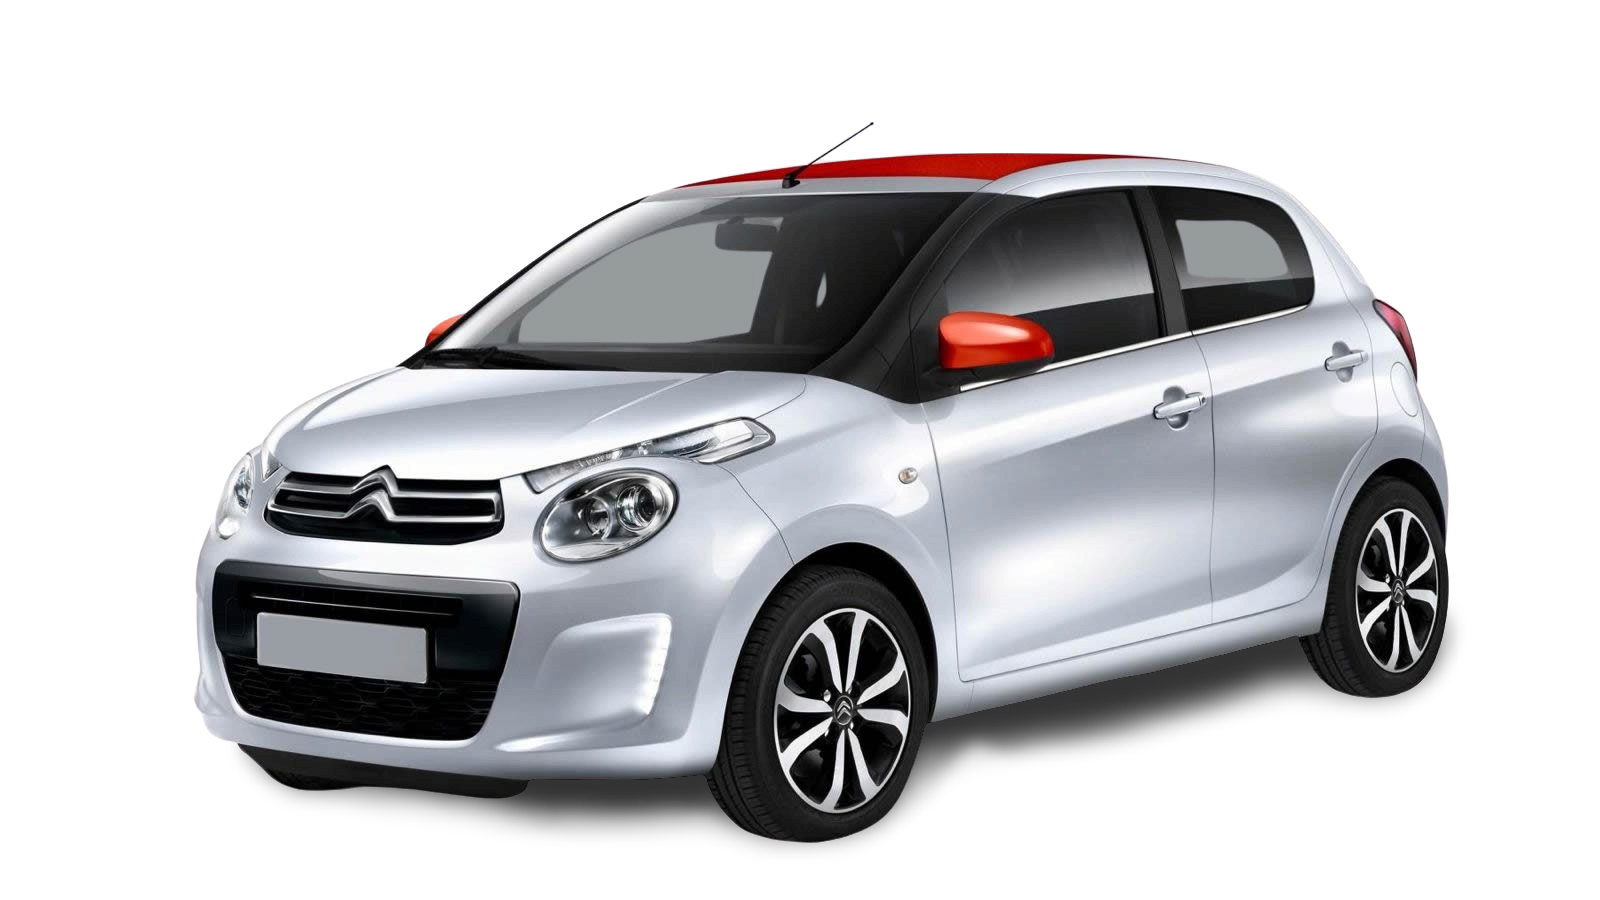 Citroen C1 silver and red - Background Removed